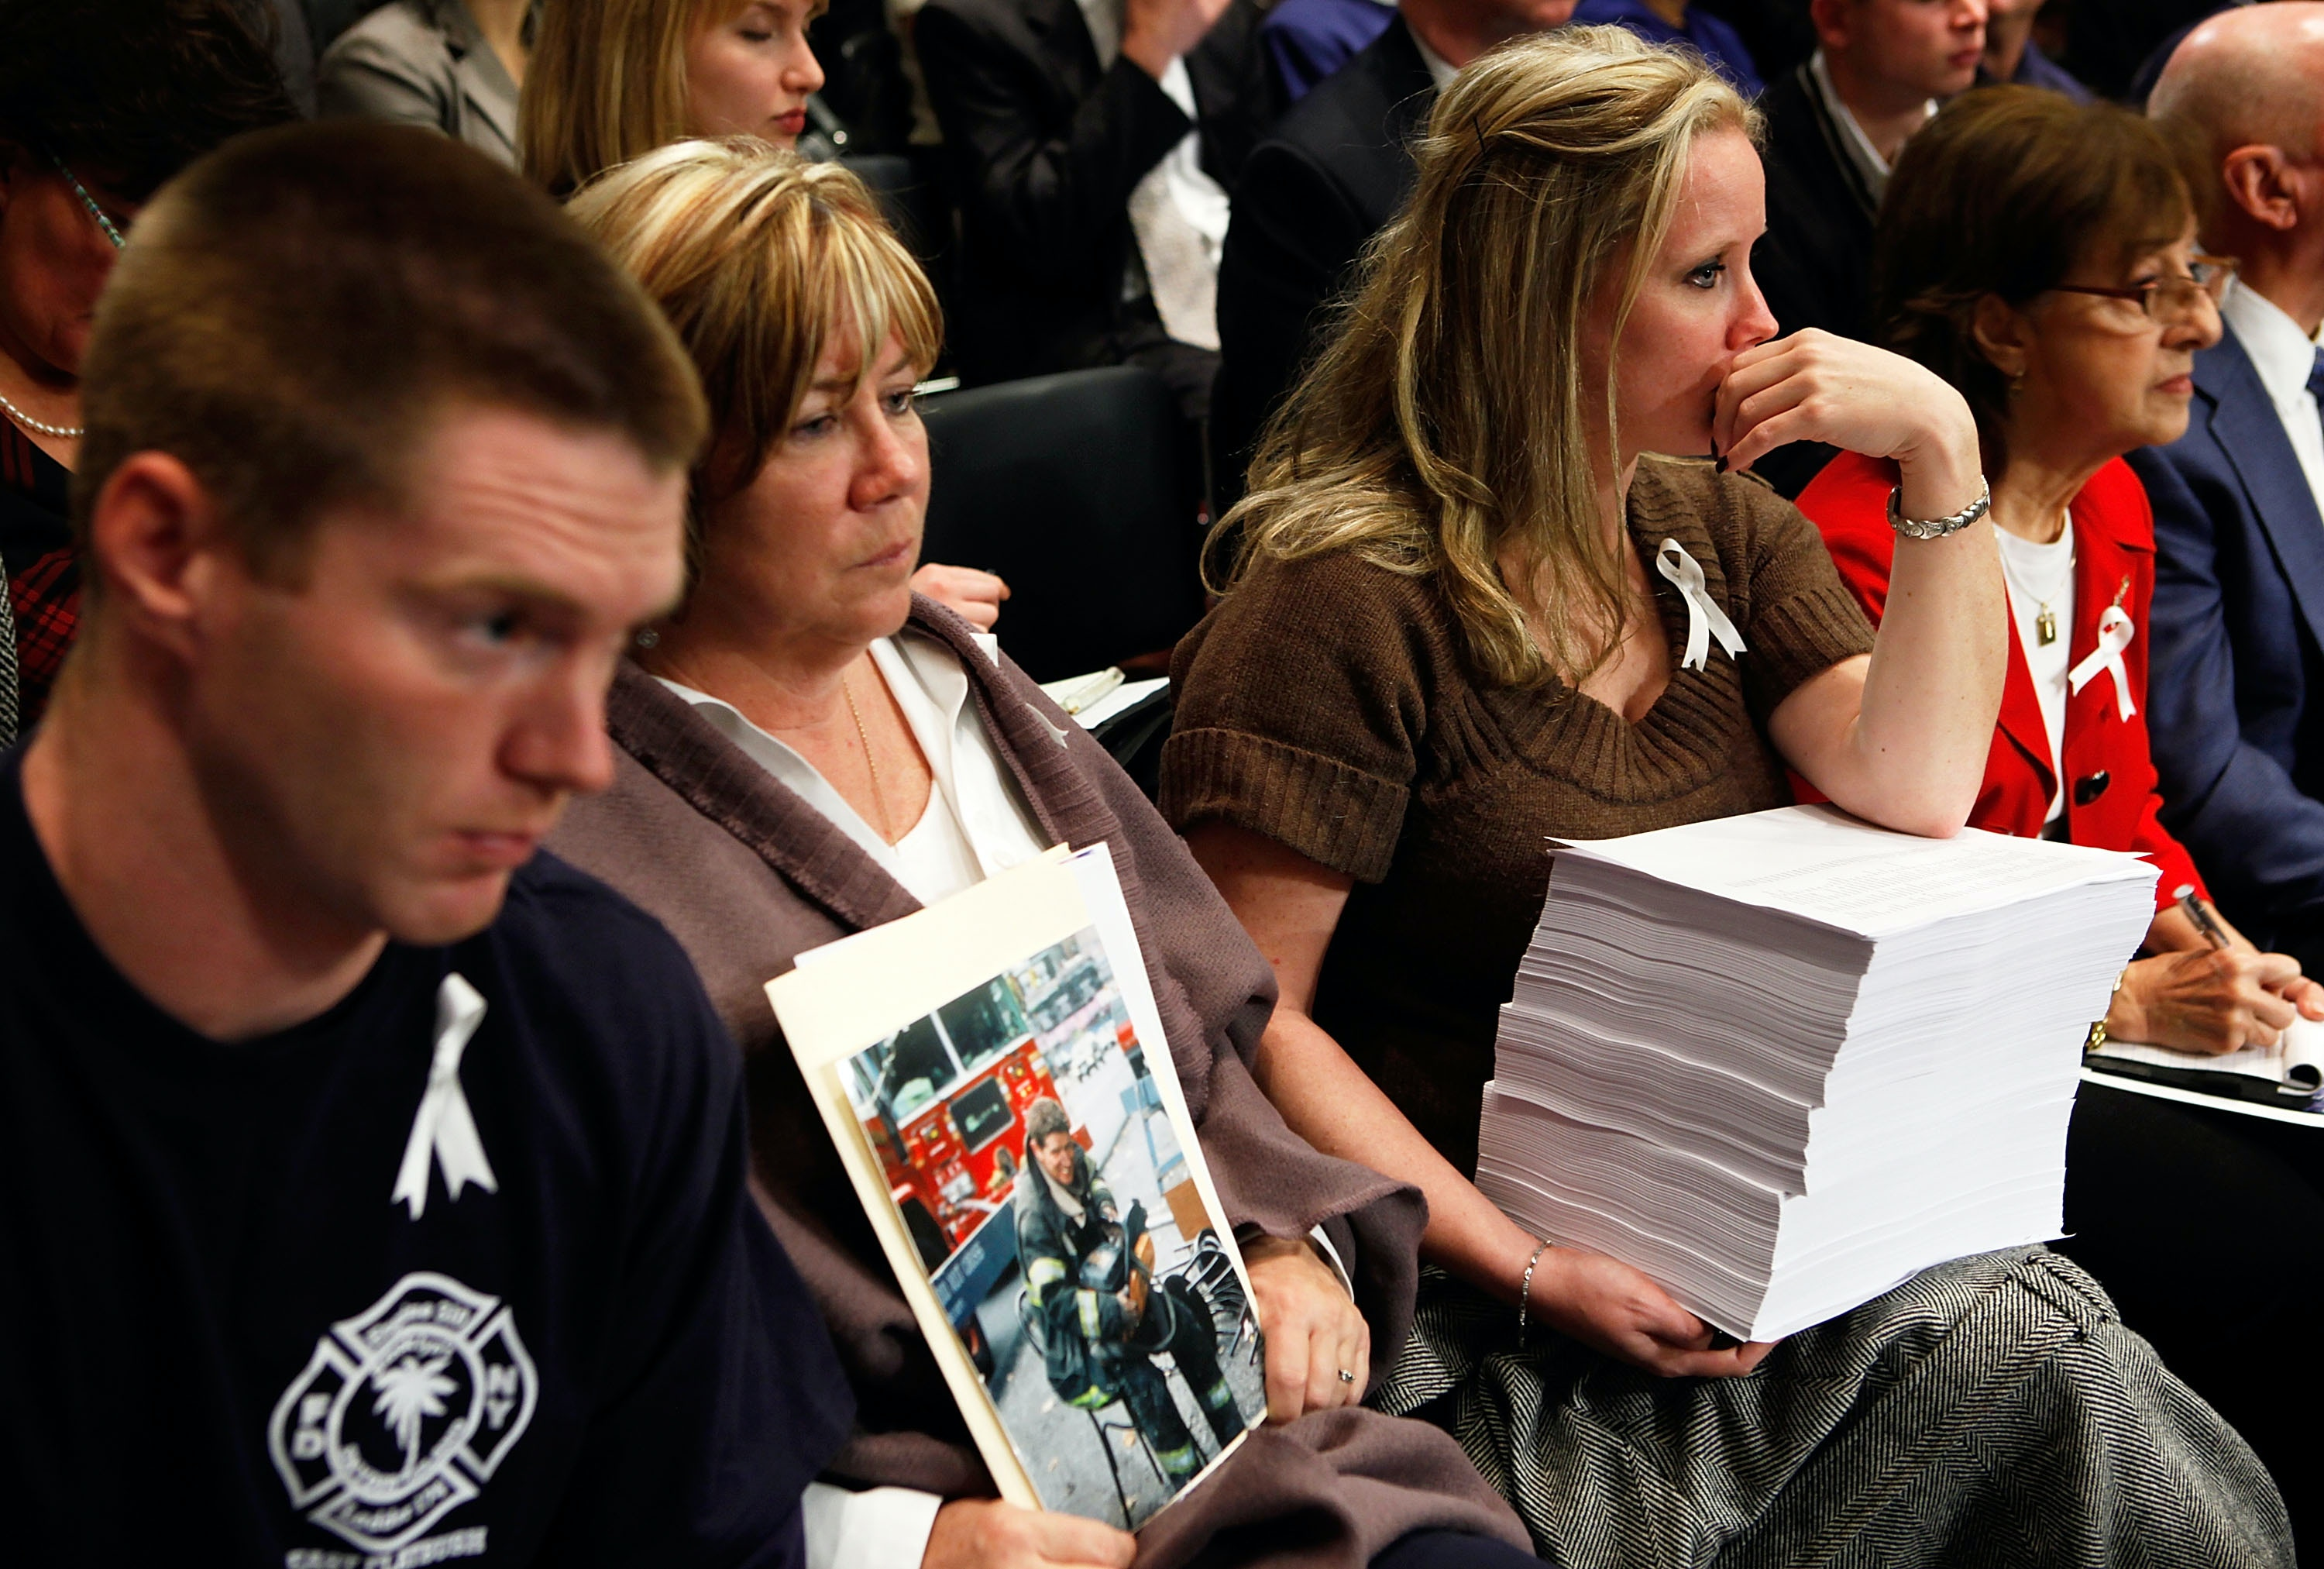 Theresa Regan (2nd L), who lost her husband and FDNY firefighter Donald Regan at the South Tower of the World Trade Center during the 9/11 terrorists attacks, listens with her son Peter (L) and daughterJill (3rd L) during a hearing before the Senate Judiciary Committee on Capitol Hill November 18, 2009 in Washington, DC.